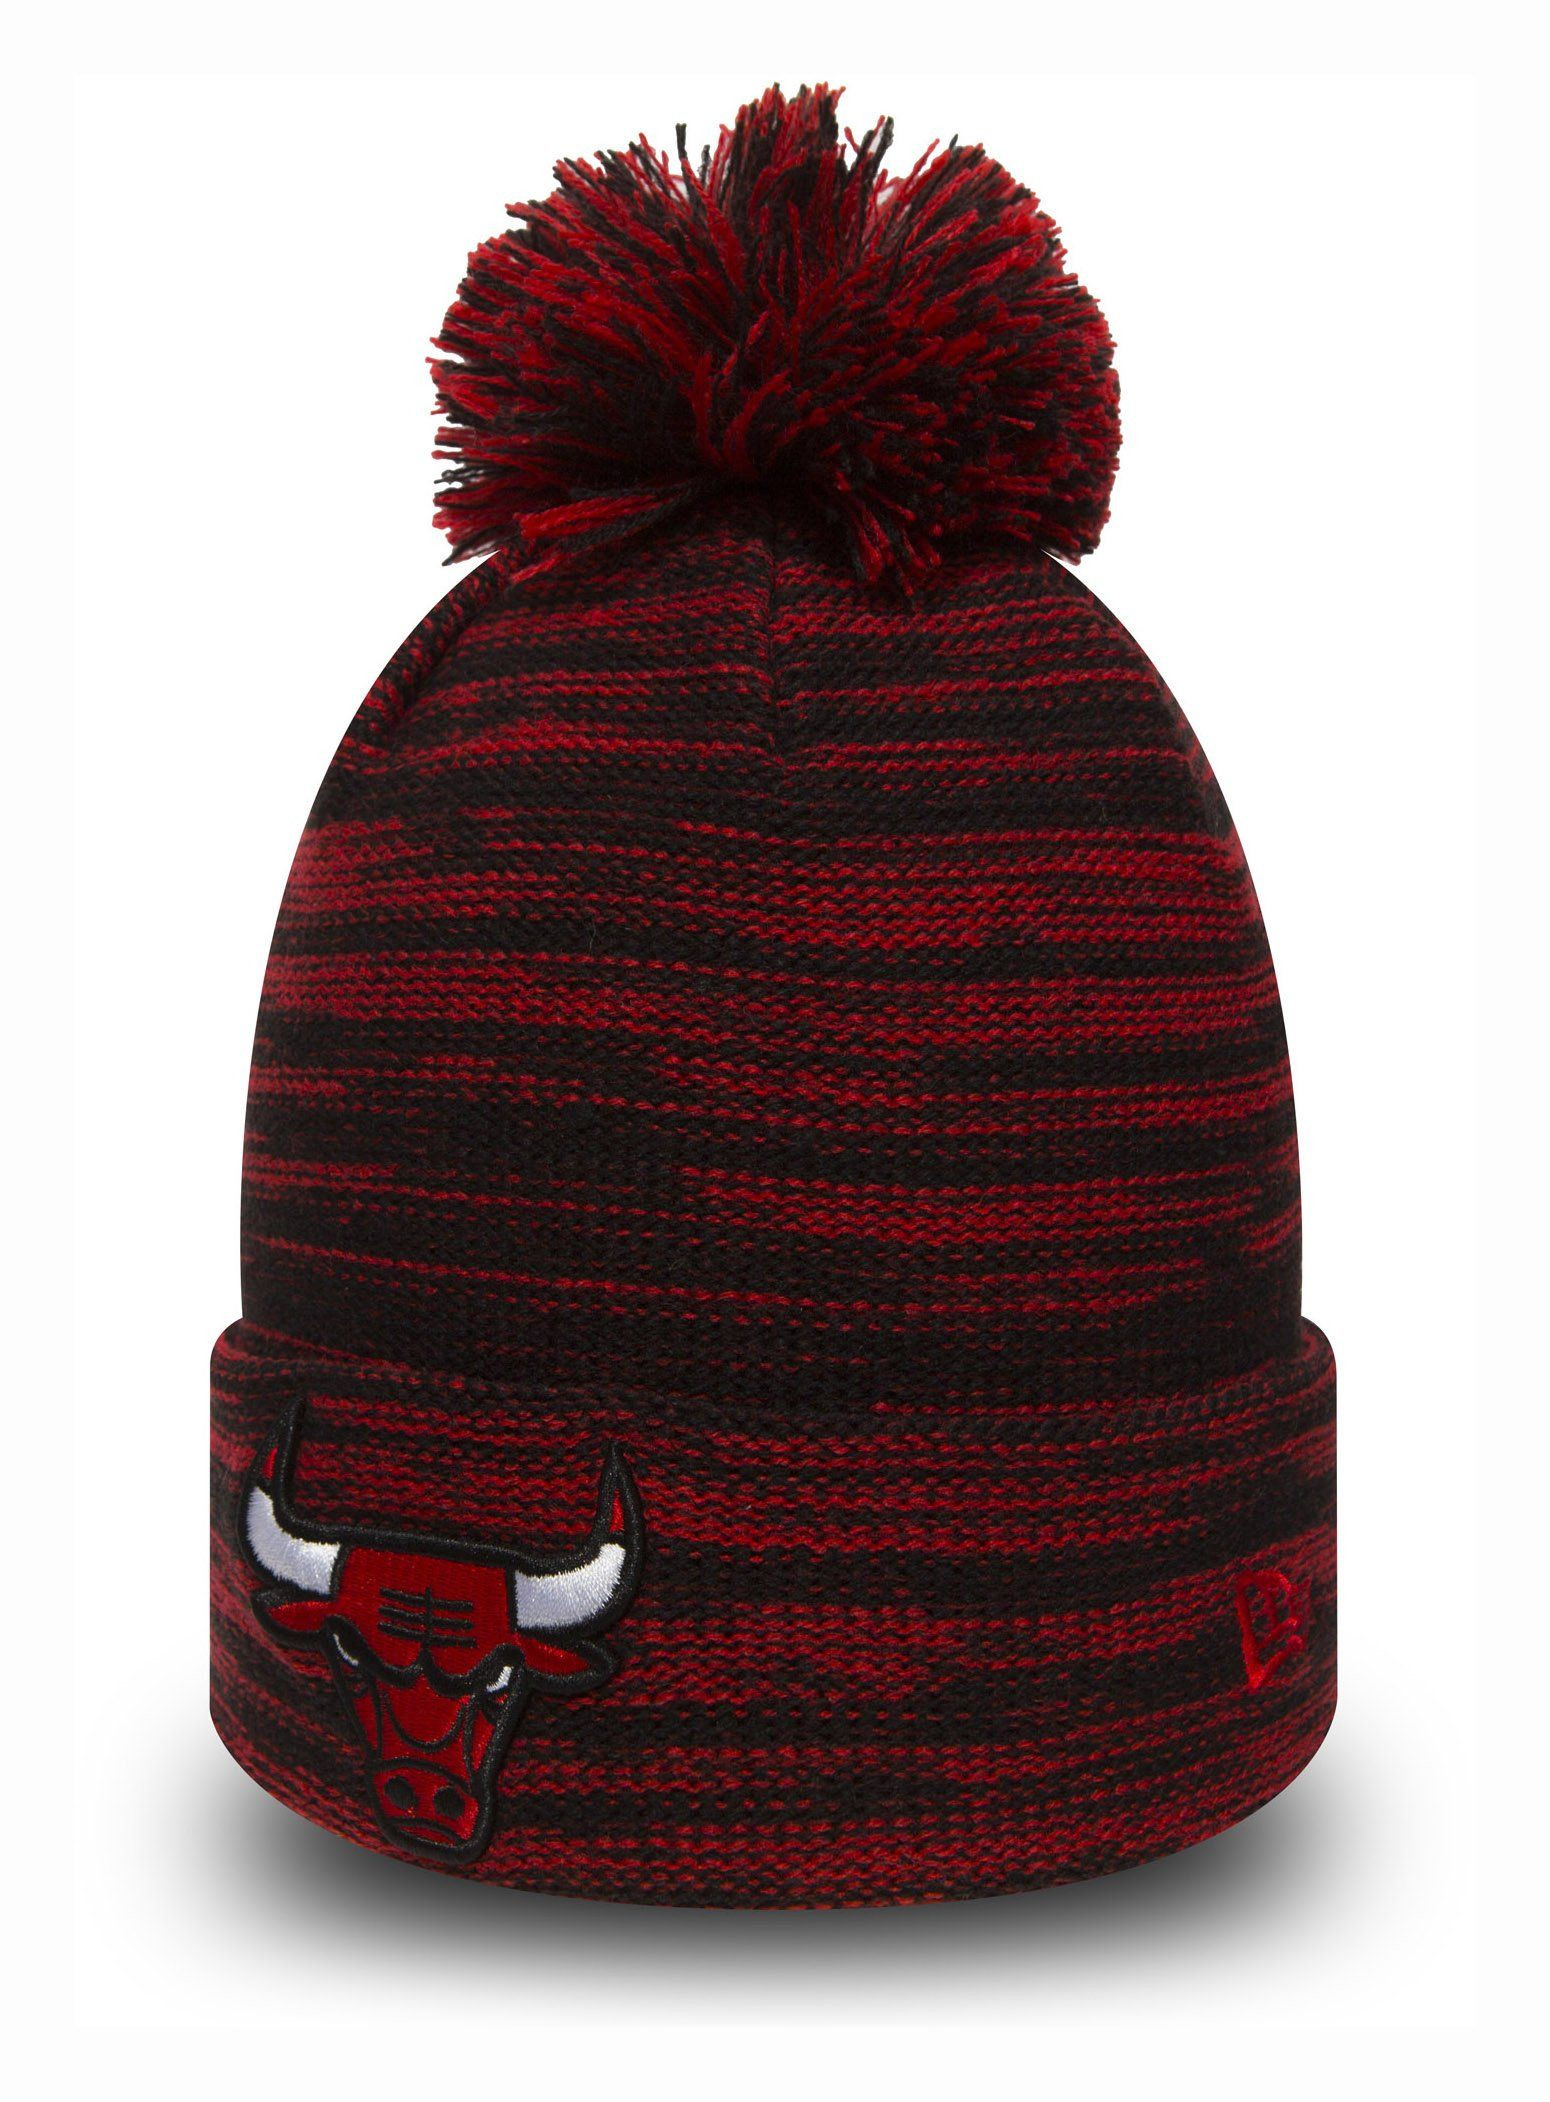 4ff1bd75680 Chicago Bulls New Era Kids Marl Knit Bobble Hat (Age 5 - 10 years) –  lovemycap